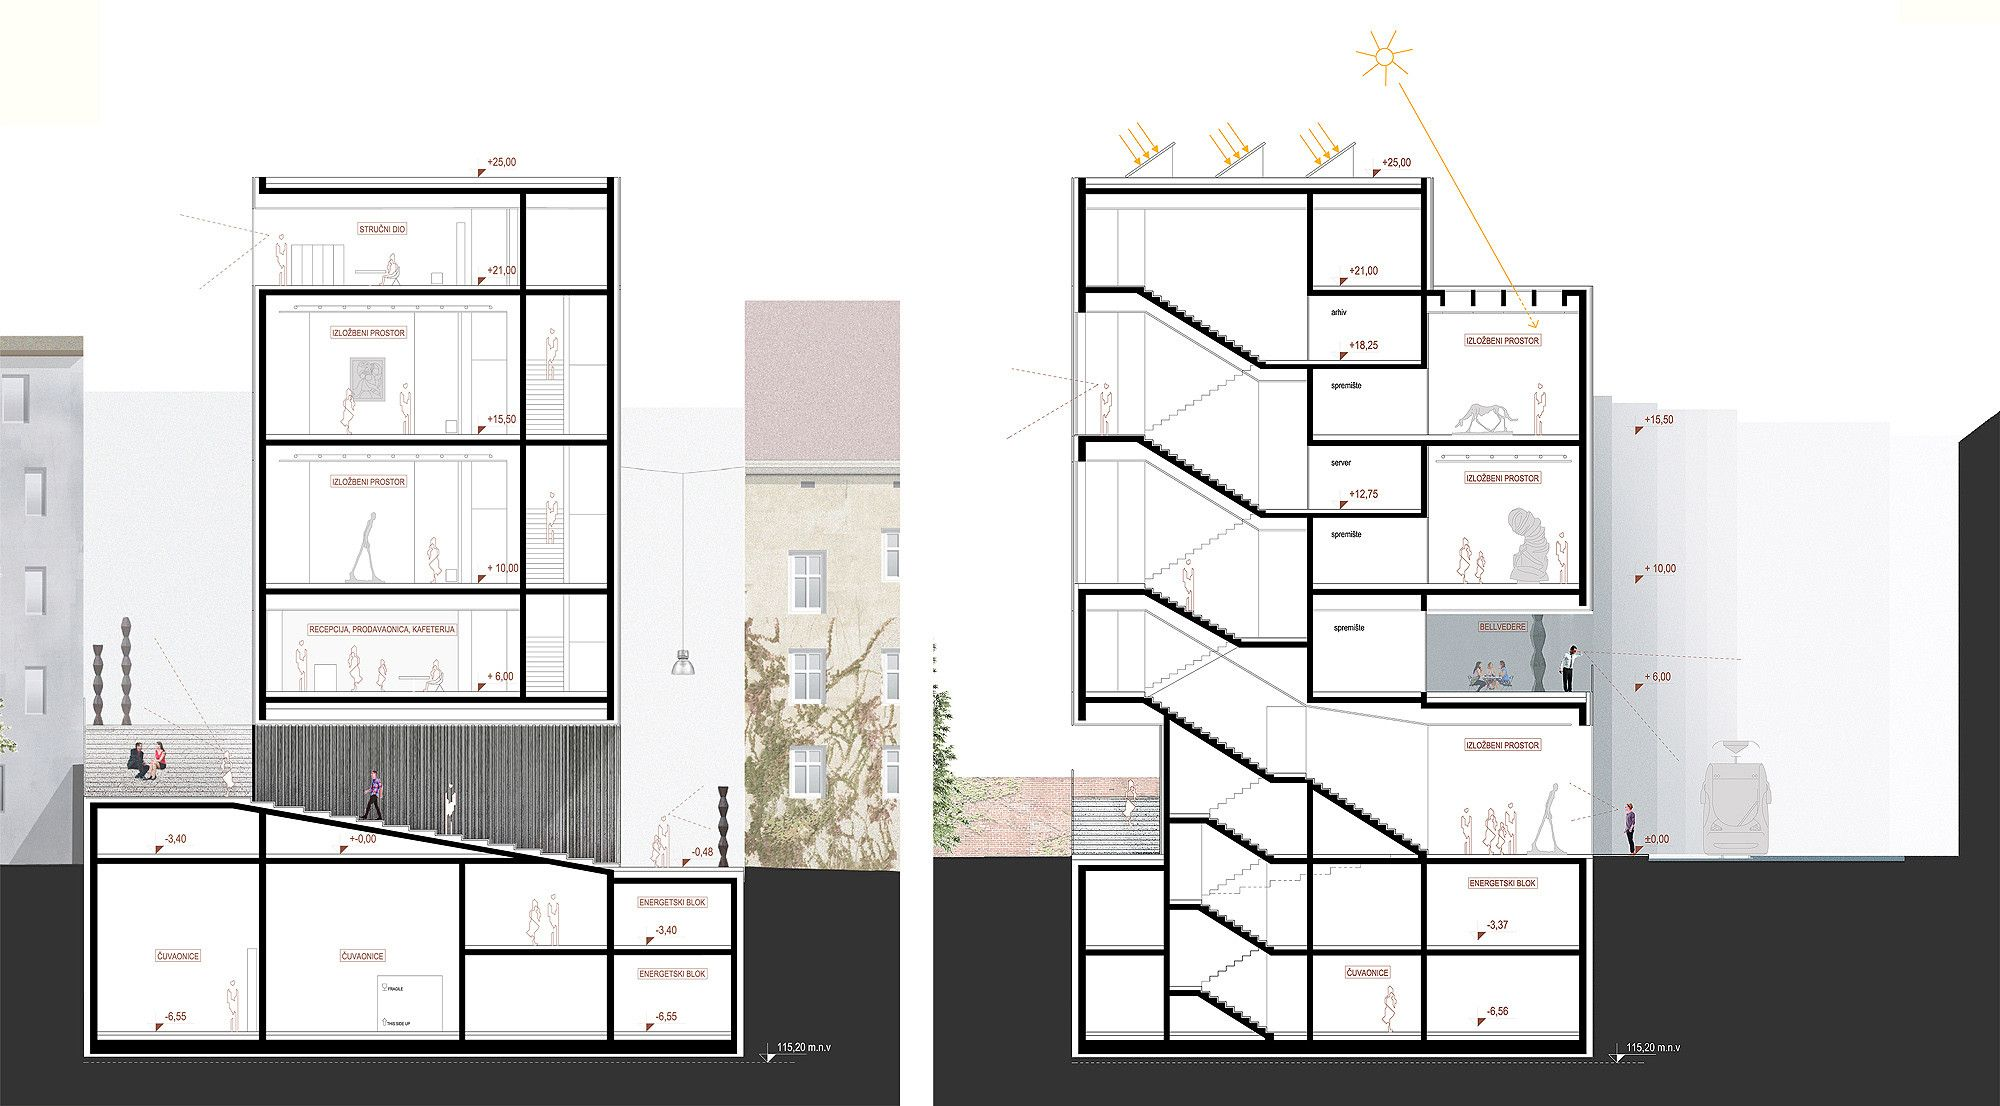 Https Www Archdaily Com 516234 Multiplan Arhitekti Wins Competition For New Gallery In Zagreb 539ac111c07a805cea00081c Mu Win Competitions Zagreb Competition